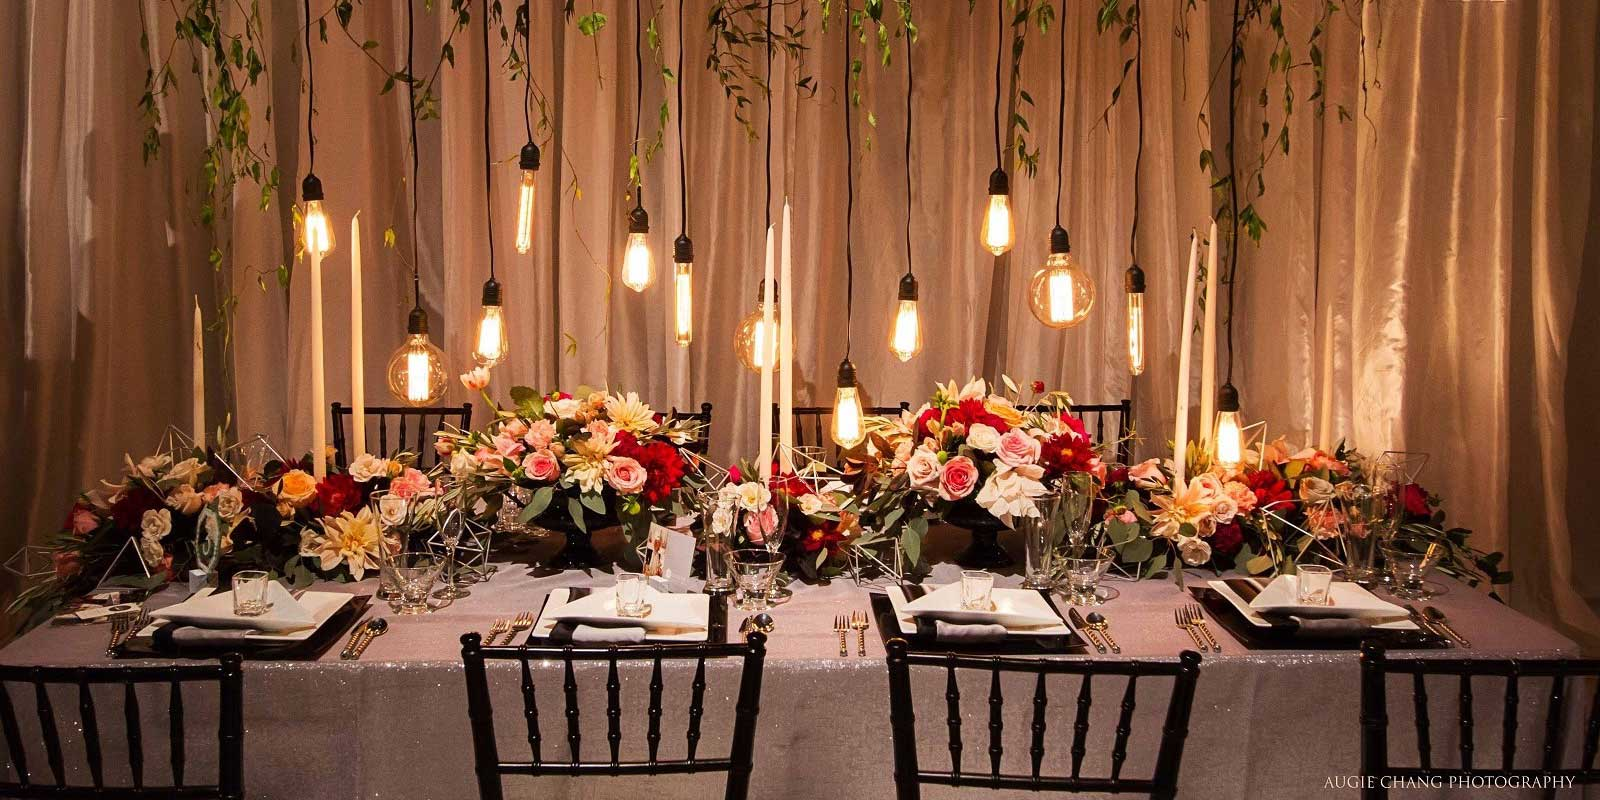 Special event rentals in East Bay, California